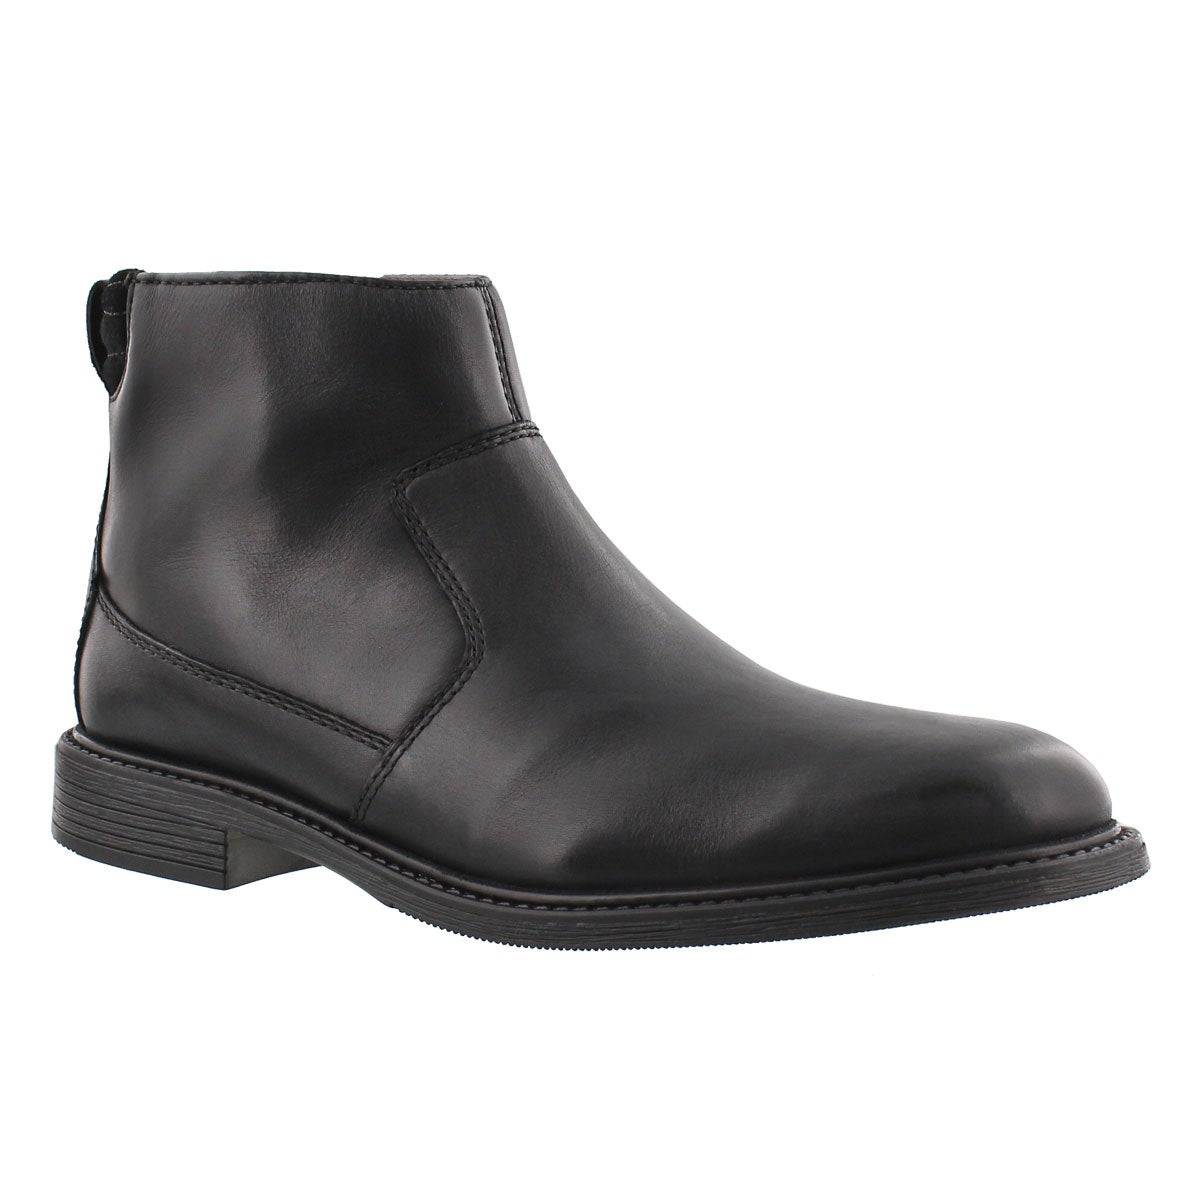 Mns Edman Rise black zip up ankle boot